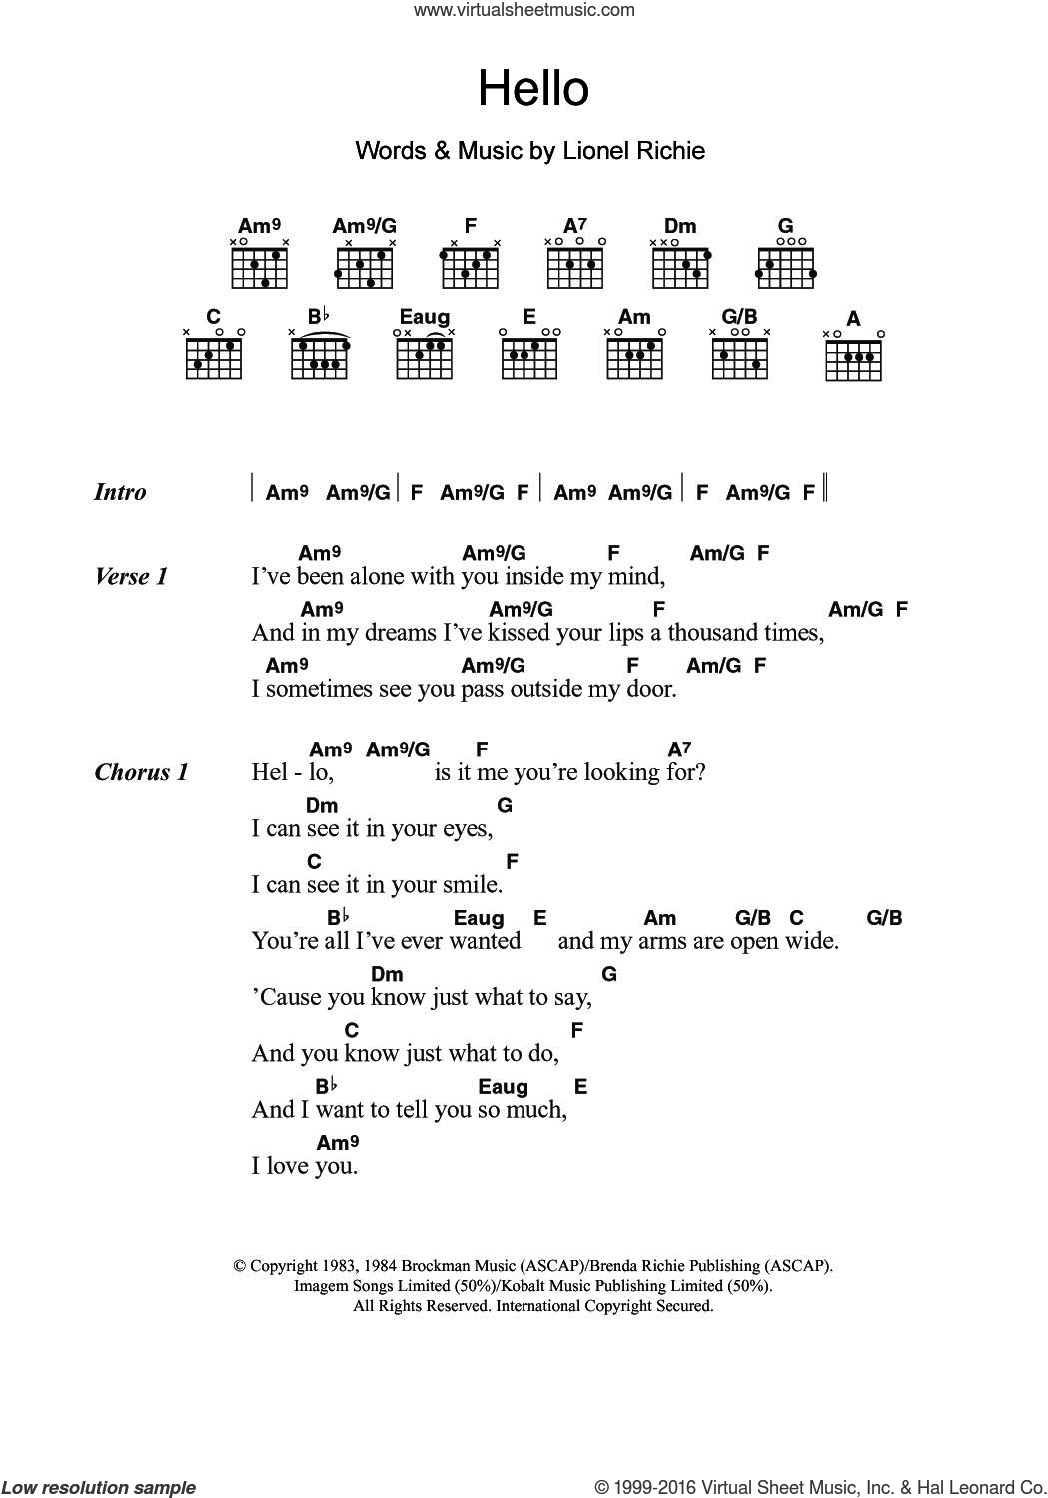 Hello sheet music for guitar (chords) by Lionel Richie